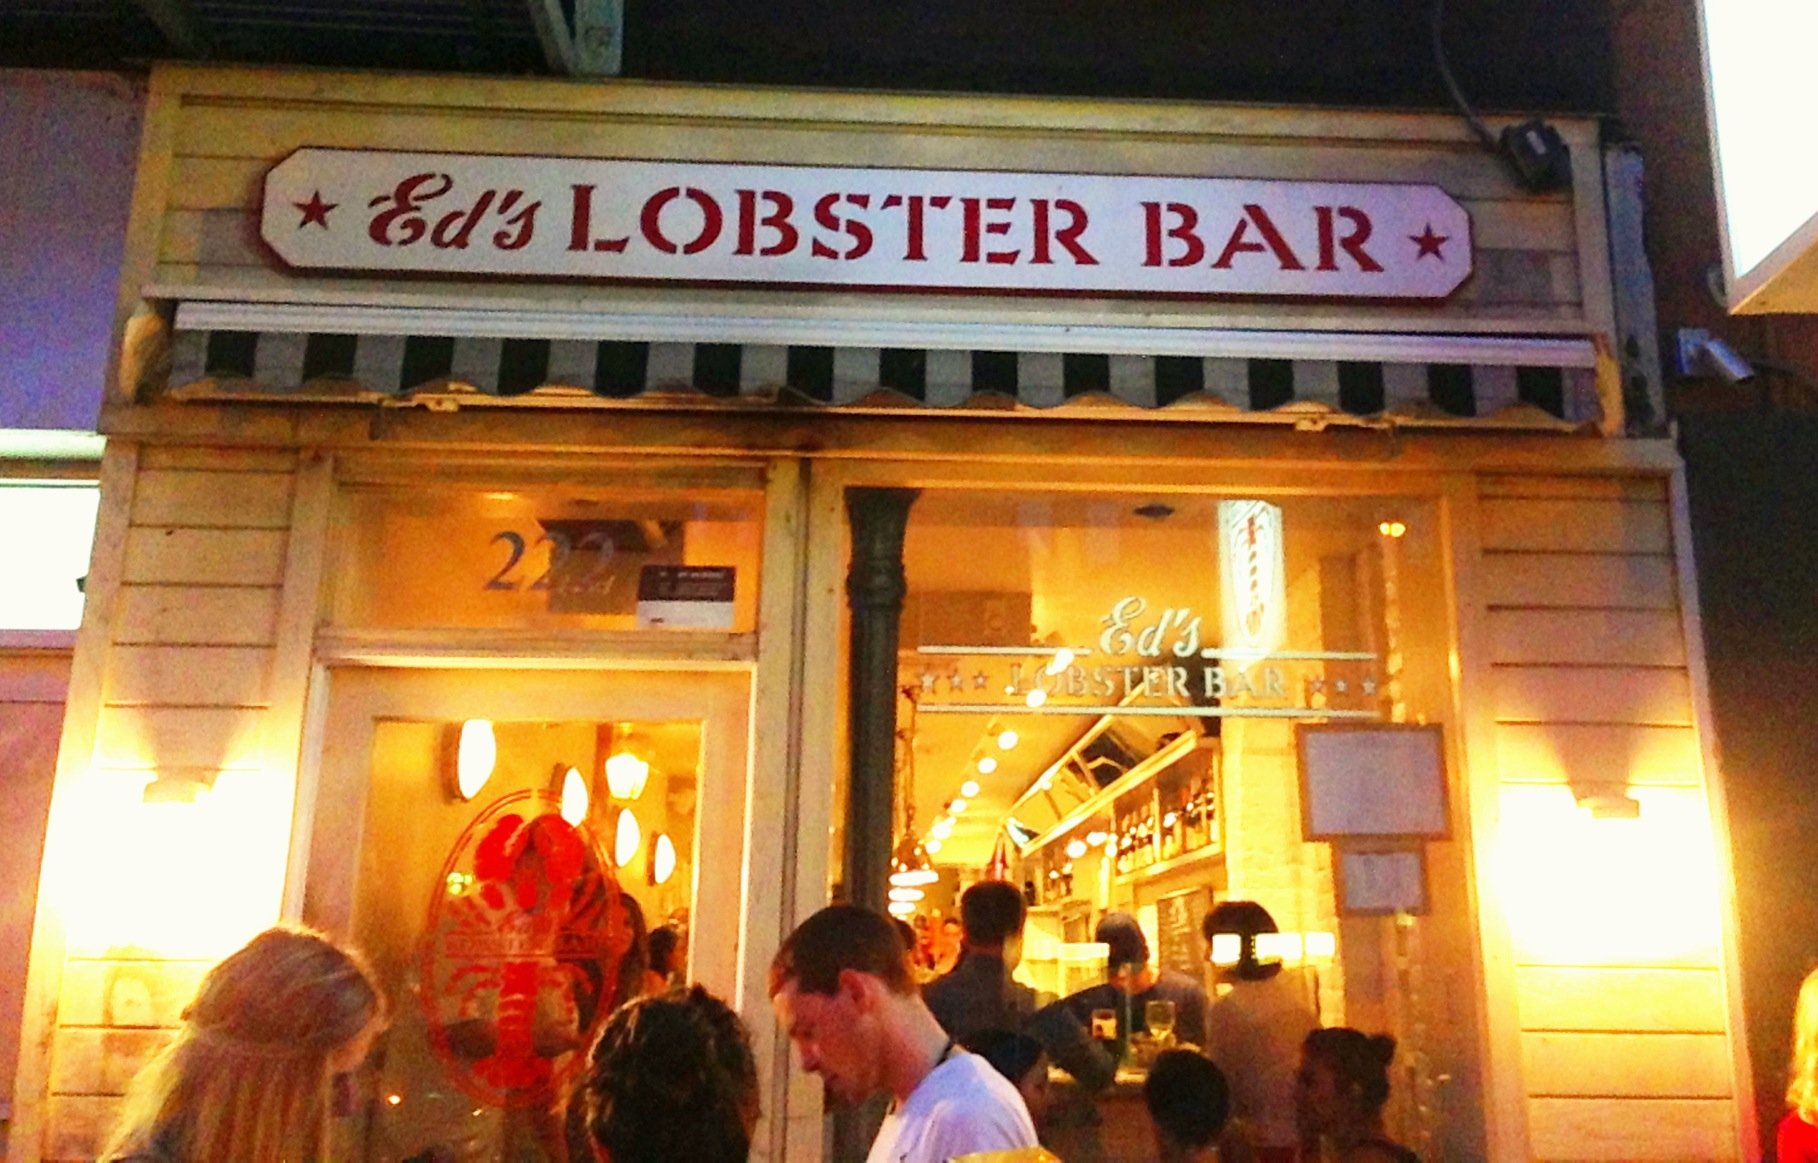 outside-eds-lobster-bar-2